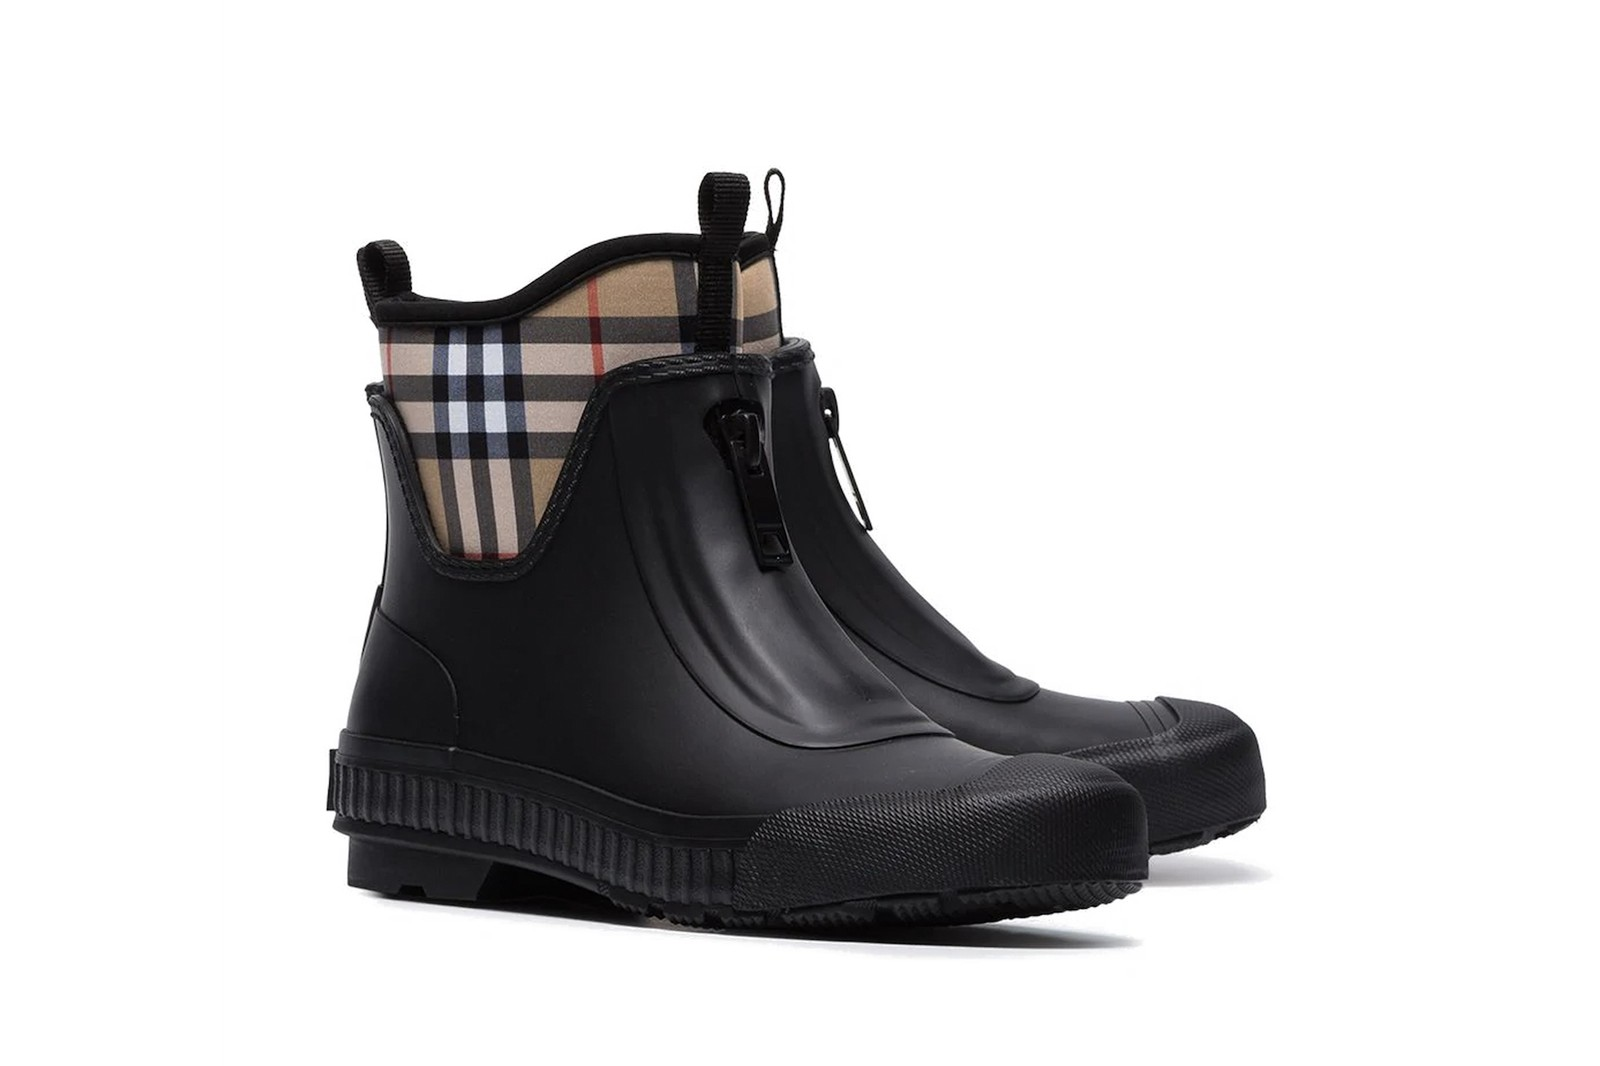 Festival Fashion Season Boots Coats Rain Balenciaga GANNI Burberry Marine Serre Rains Jacket Wellies